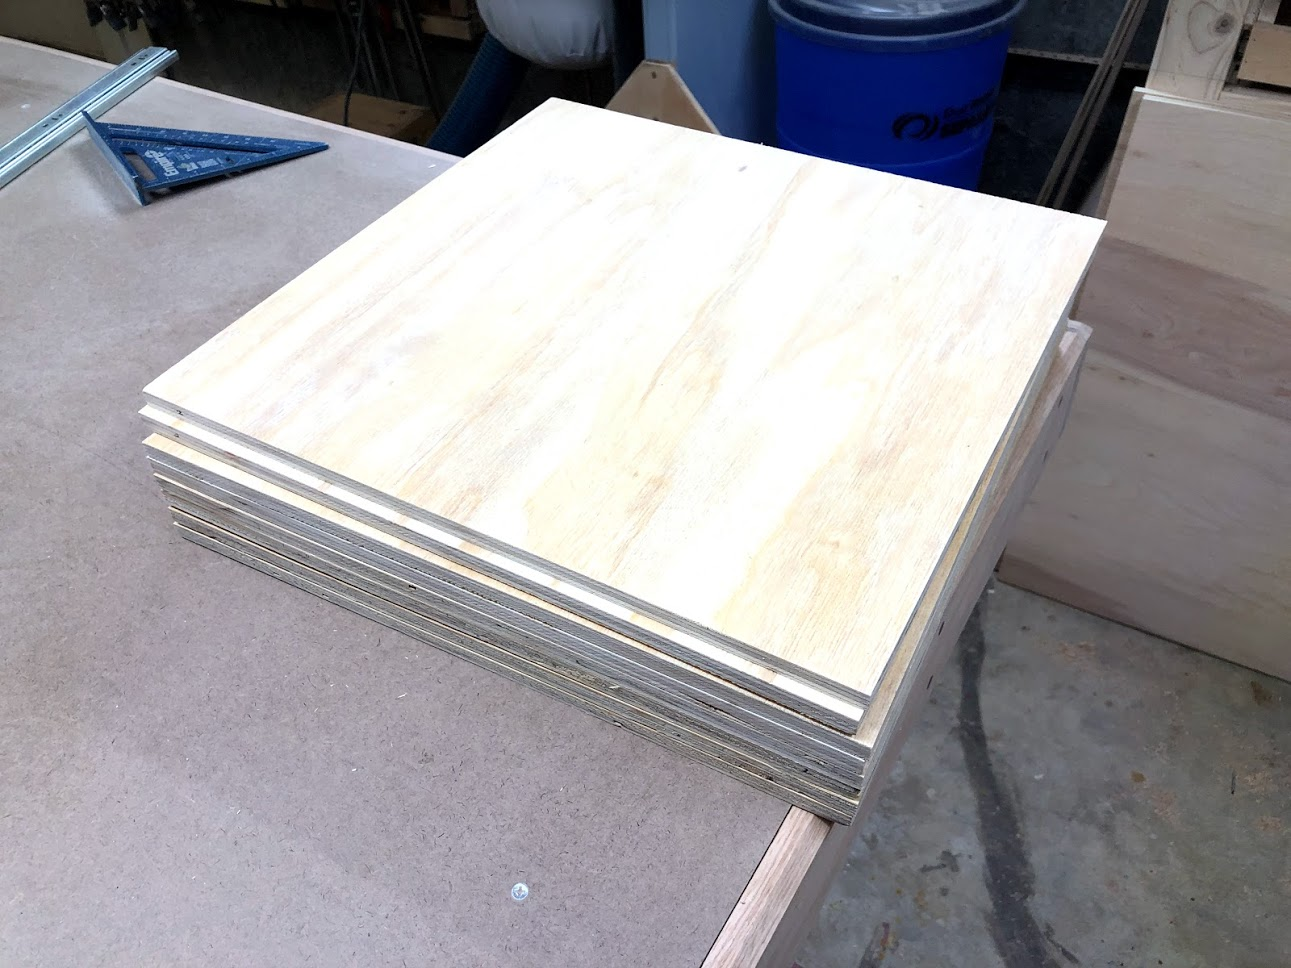 Here are the 8 drawer bases all cut to size.